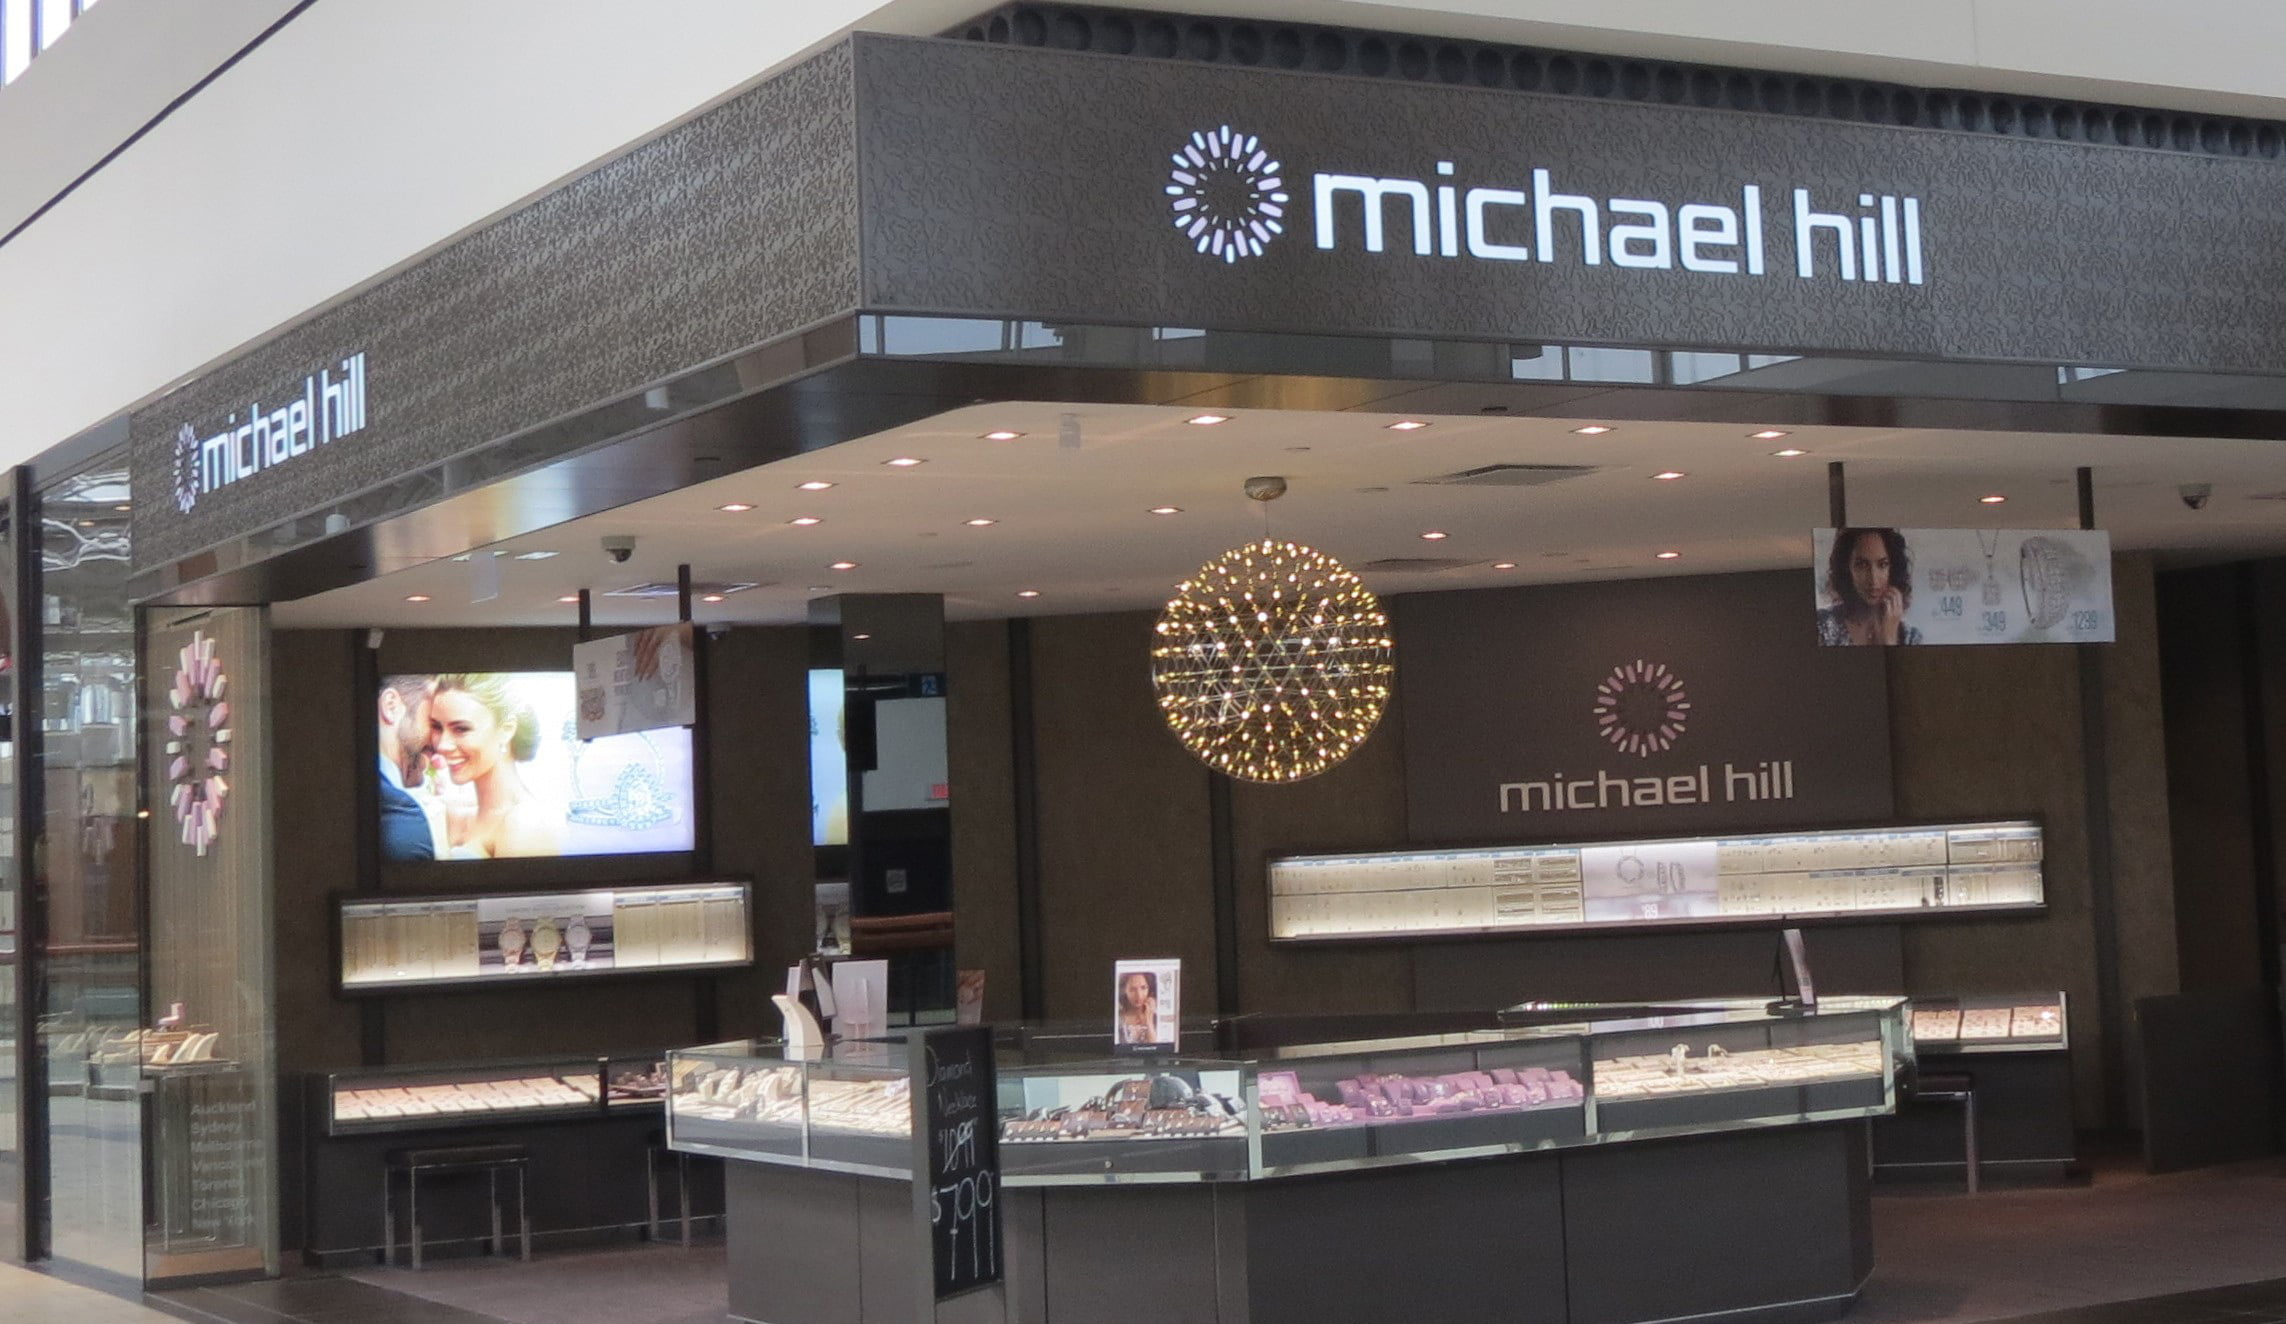 micheal hill storefront